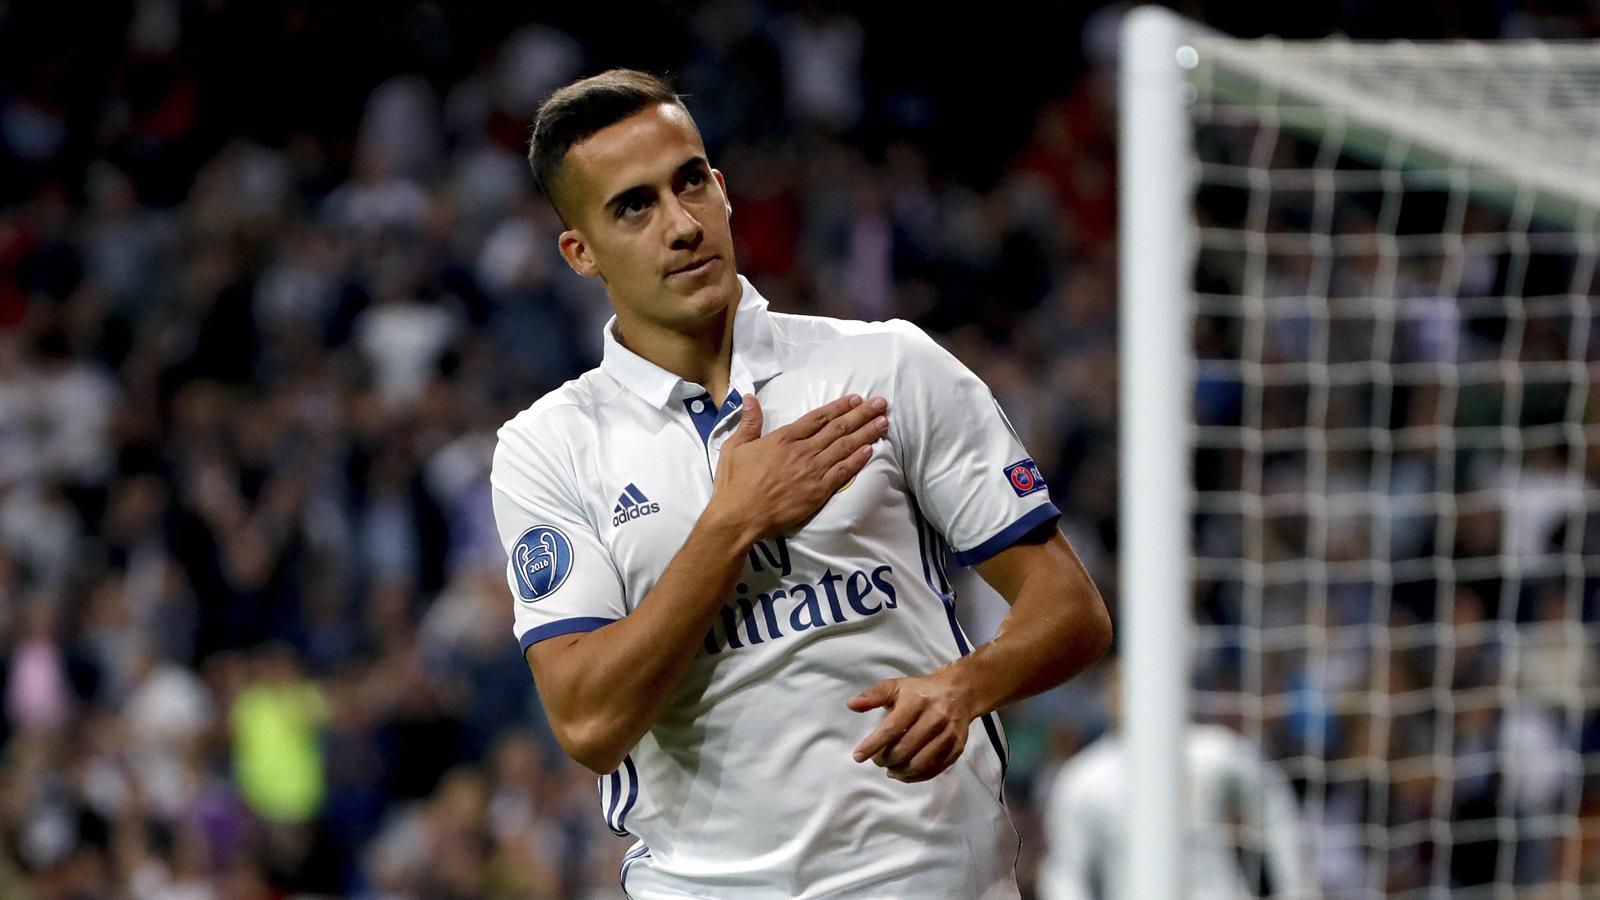 Real Madrid's Lucas Vazquez signs new contract - Liga 2016-2017 - Football - Eurosport